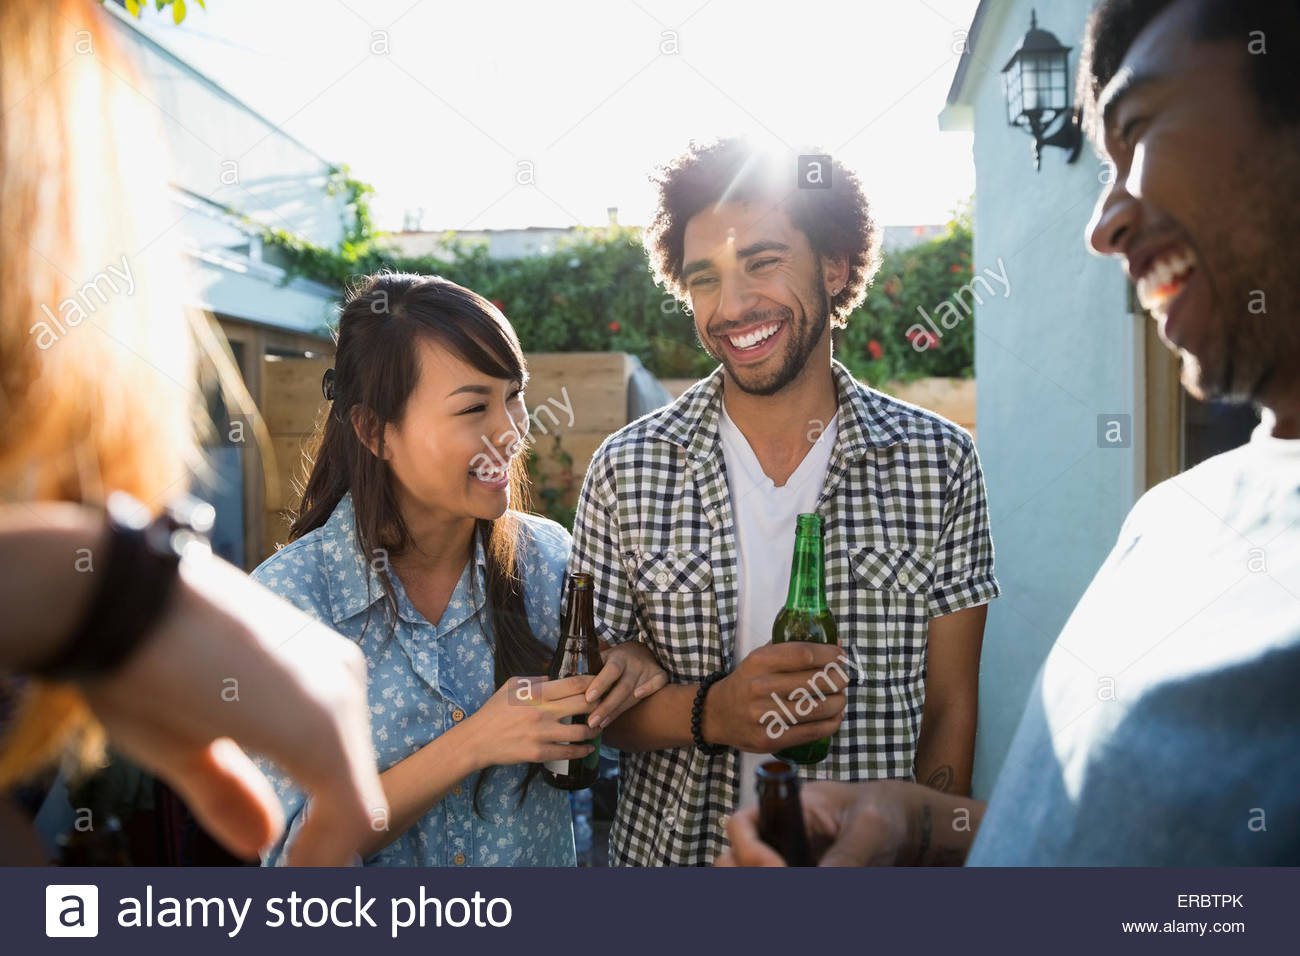 Laughing friends drinking beer on sunny patio Photo Stock